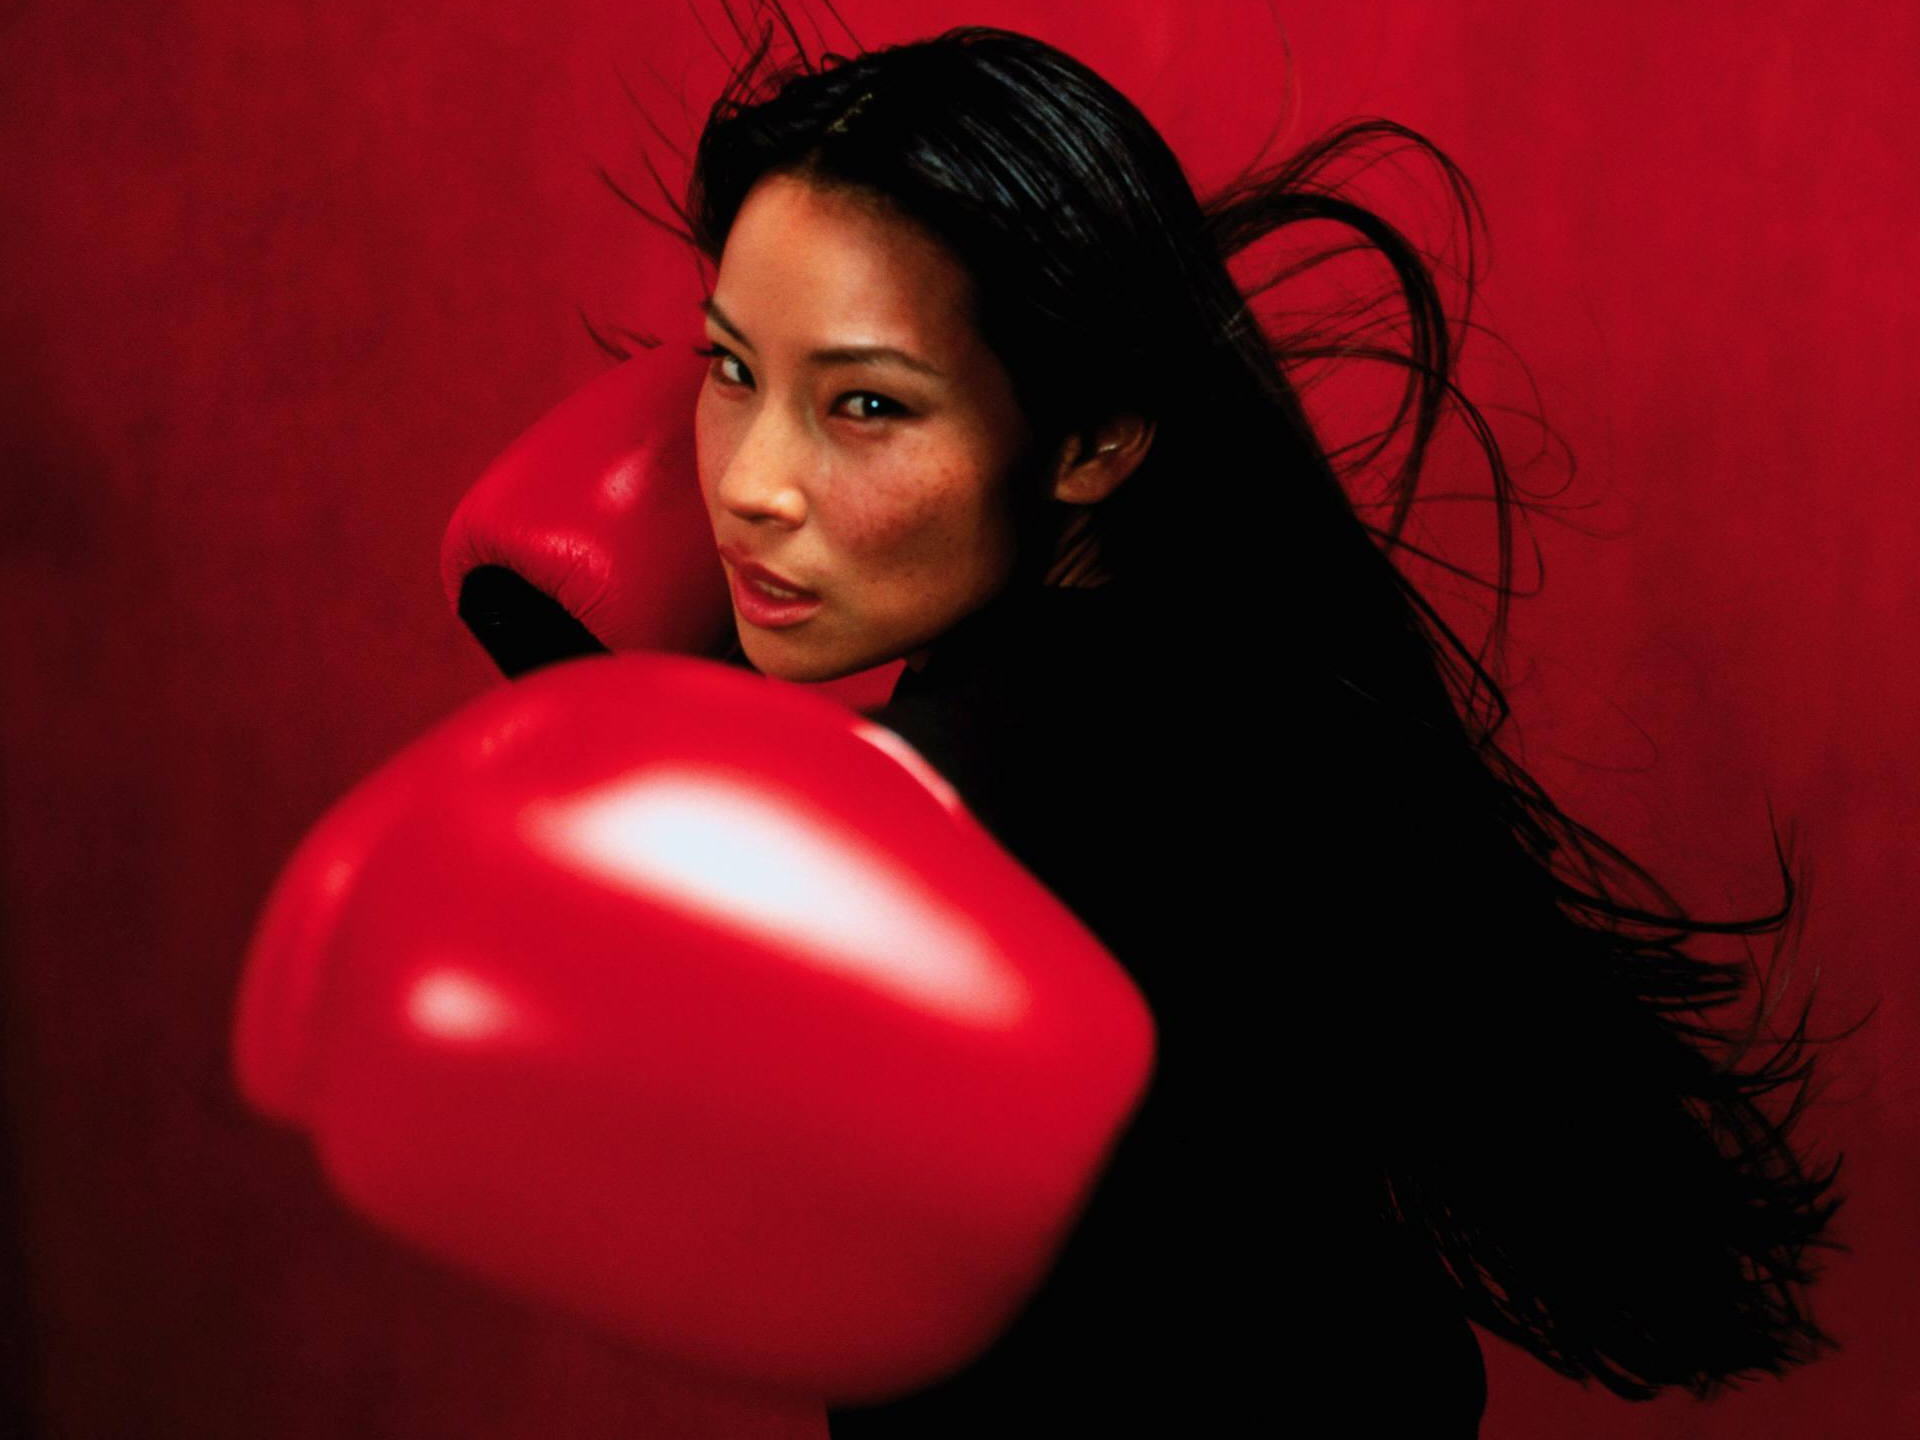 lucy liu computer wallpaper 58379